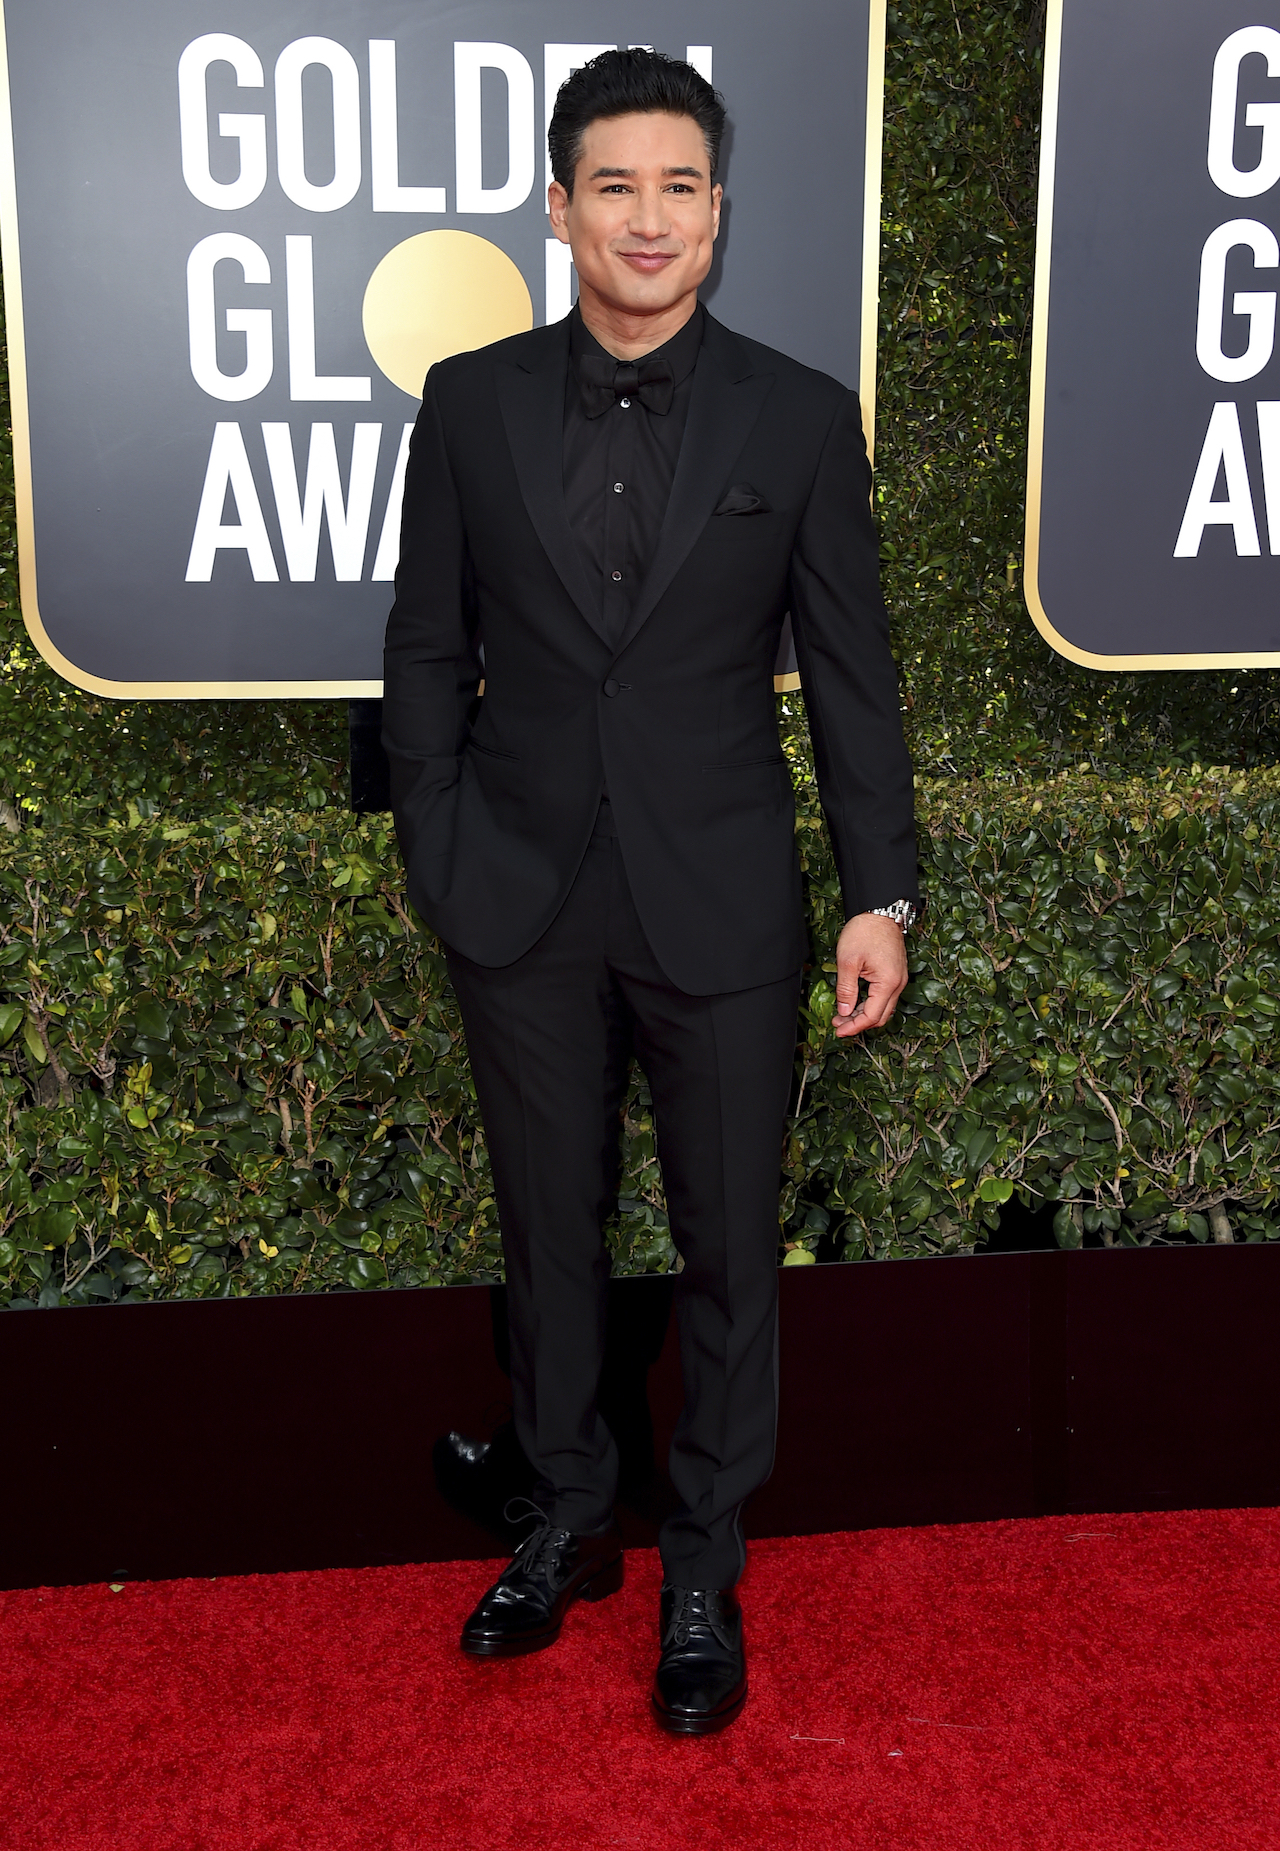 <div class='meta'><div class='origin-logo' data-origin='AP'></div><span class='caption-text' data-credit='Jordan Strauss/Invision/AP'>Mario Lopez arrives at the 76th annual Golden Globe Awards at the Beverly Hilton Hotel on Sunday, Jan. 6, 2019, in Beverly Hills, Calif.</span></div>